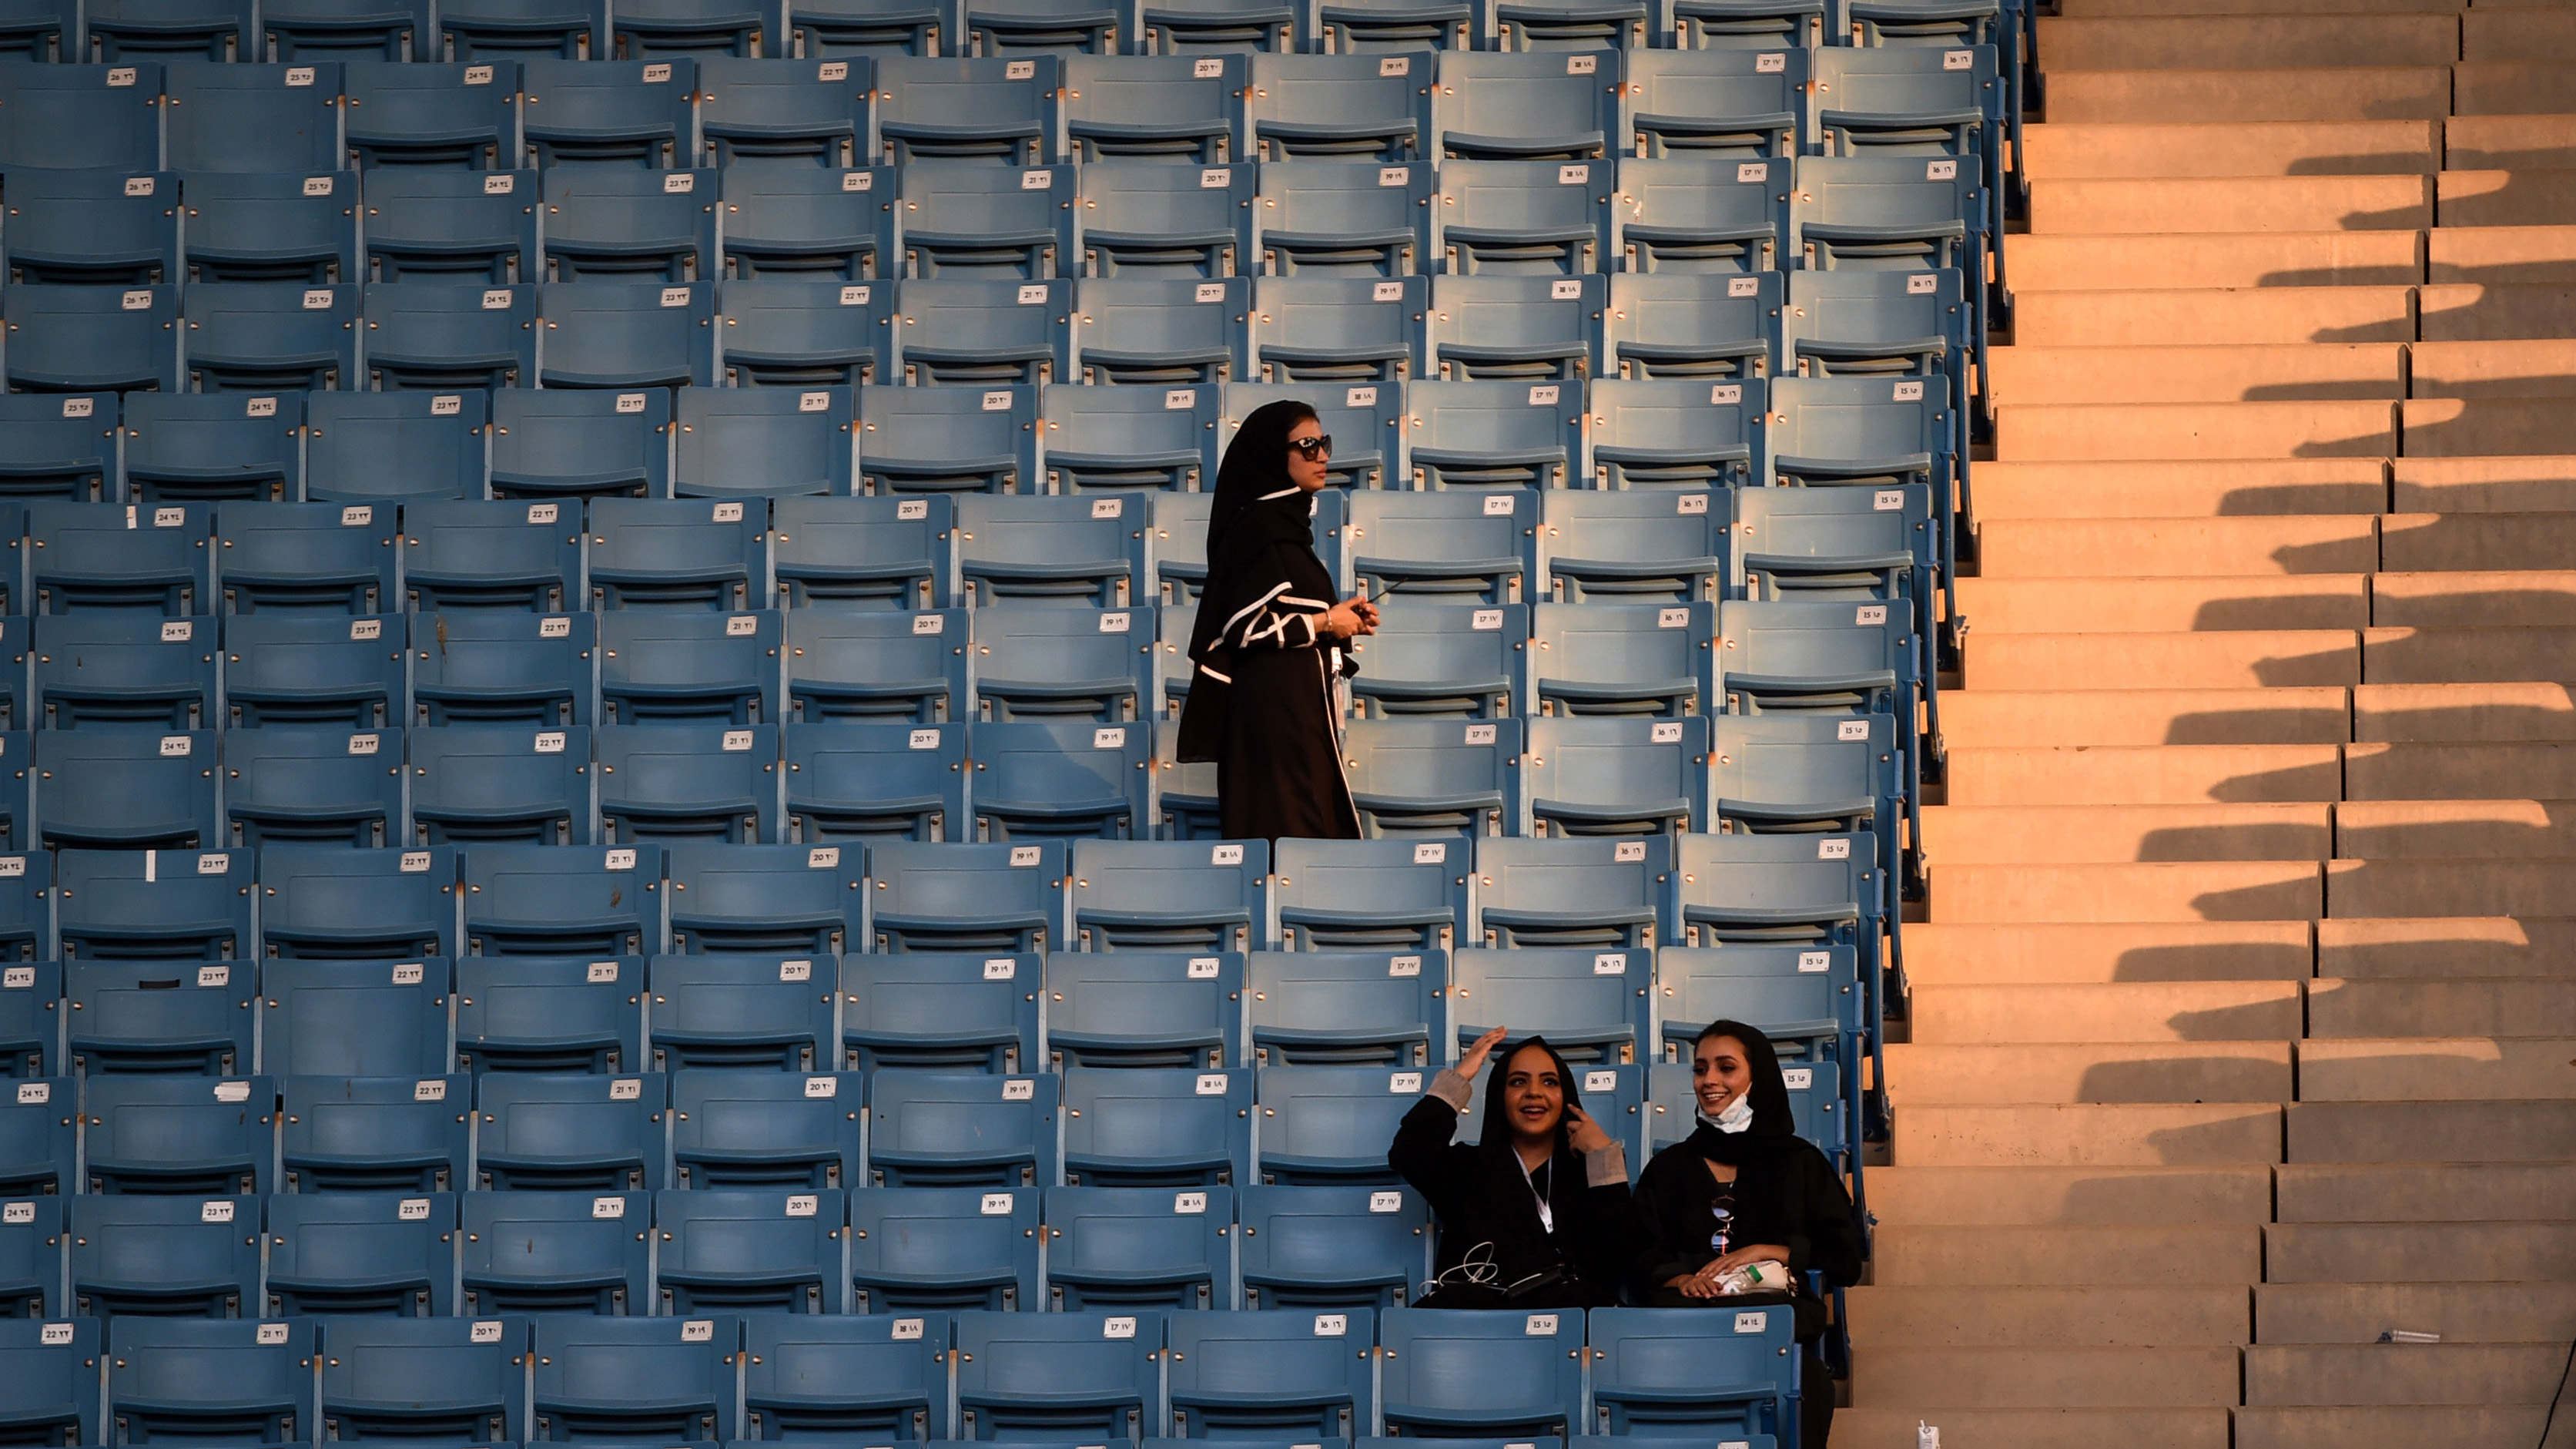 Women were allowed to enter the stadium, a previously male-only venue used mostly for football matches, with their families and seated separately from single men. (AFP)